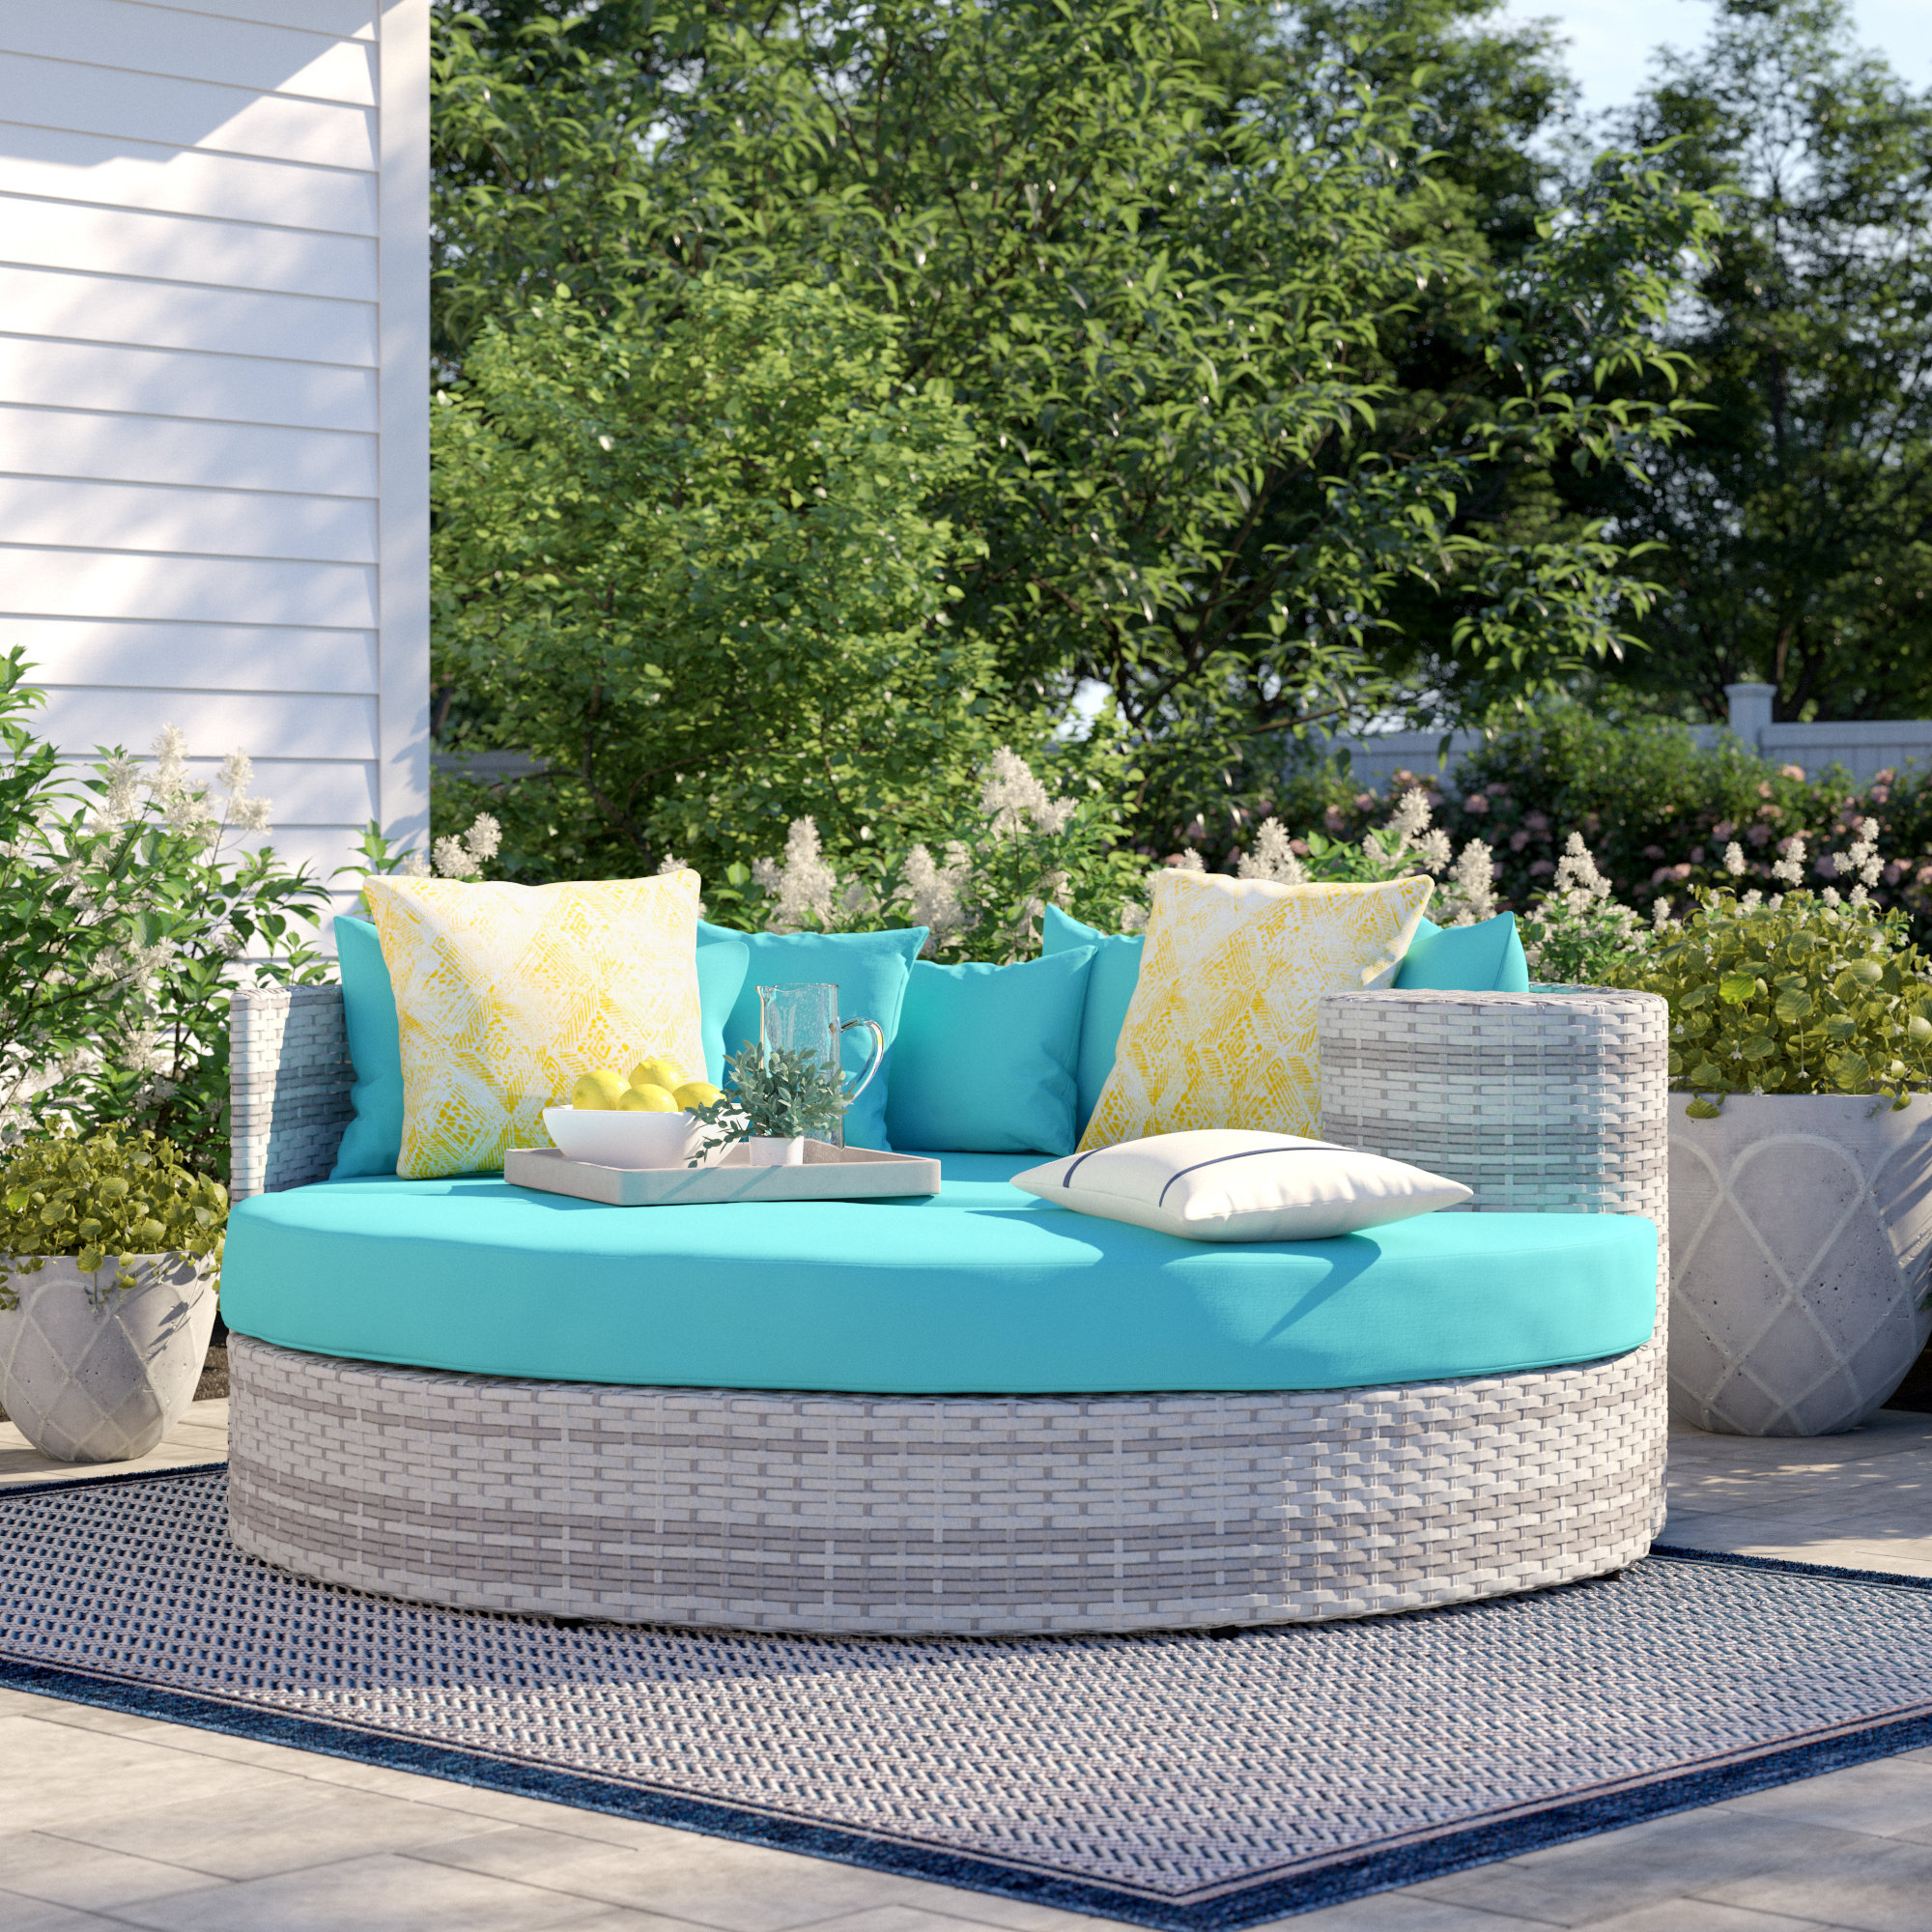 Tiana Patio Daybeds With Cushions Throughout Famous Sol 72 Outdoor Falmouth Patio Daybed With Cushions & Reviews (View 11 of 20)